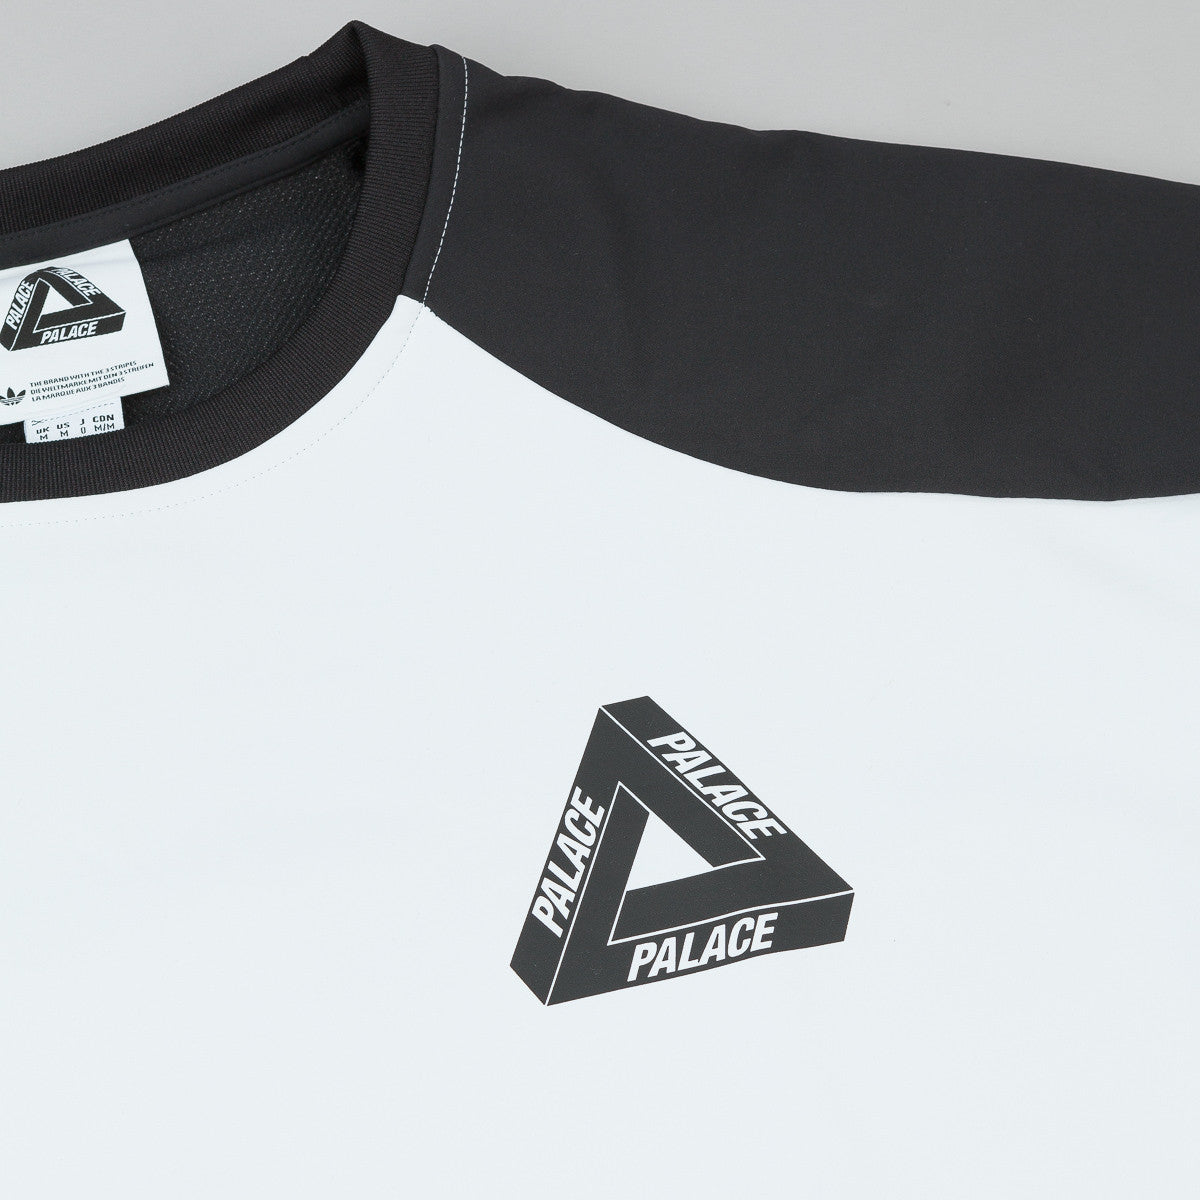 Adidas x Palace Crew Neck Sweatshirt - White / Multicolor / Black